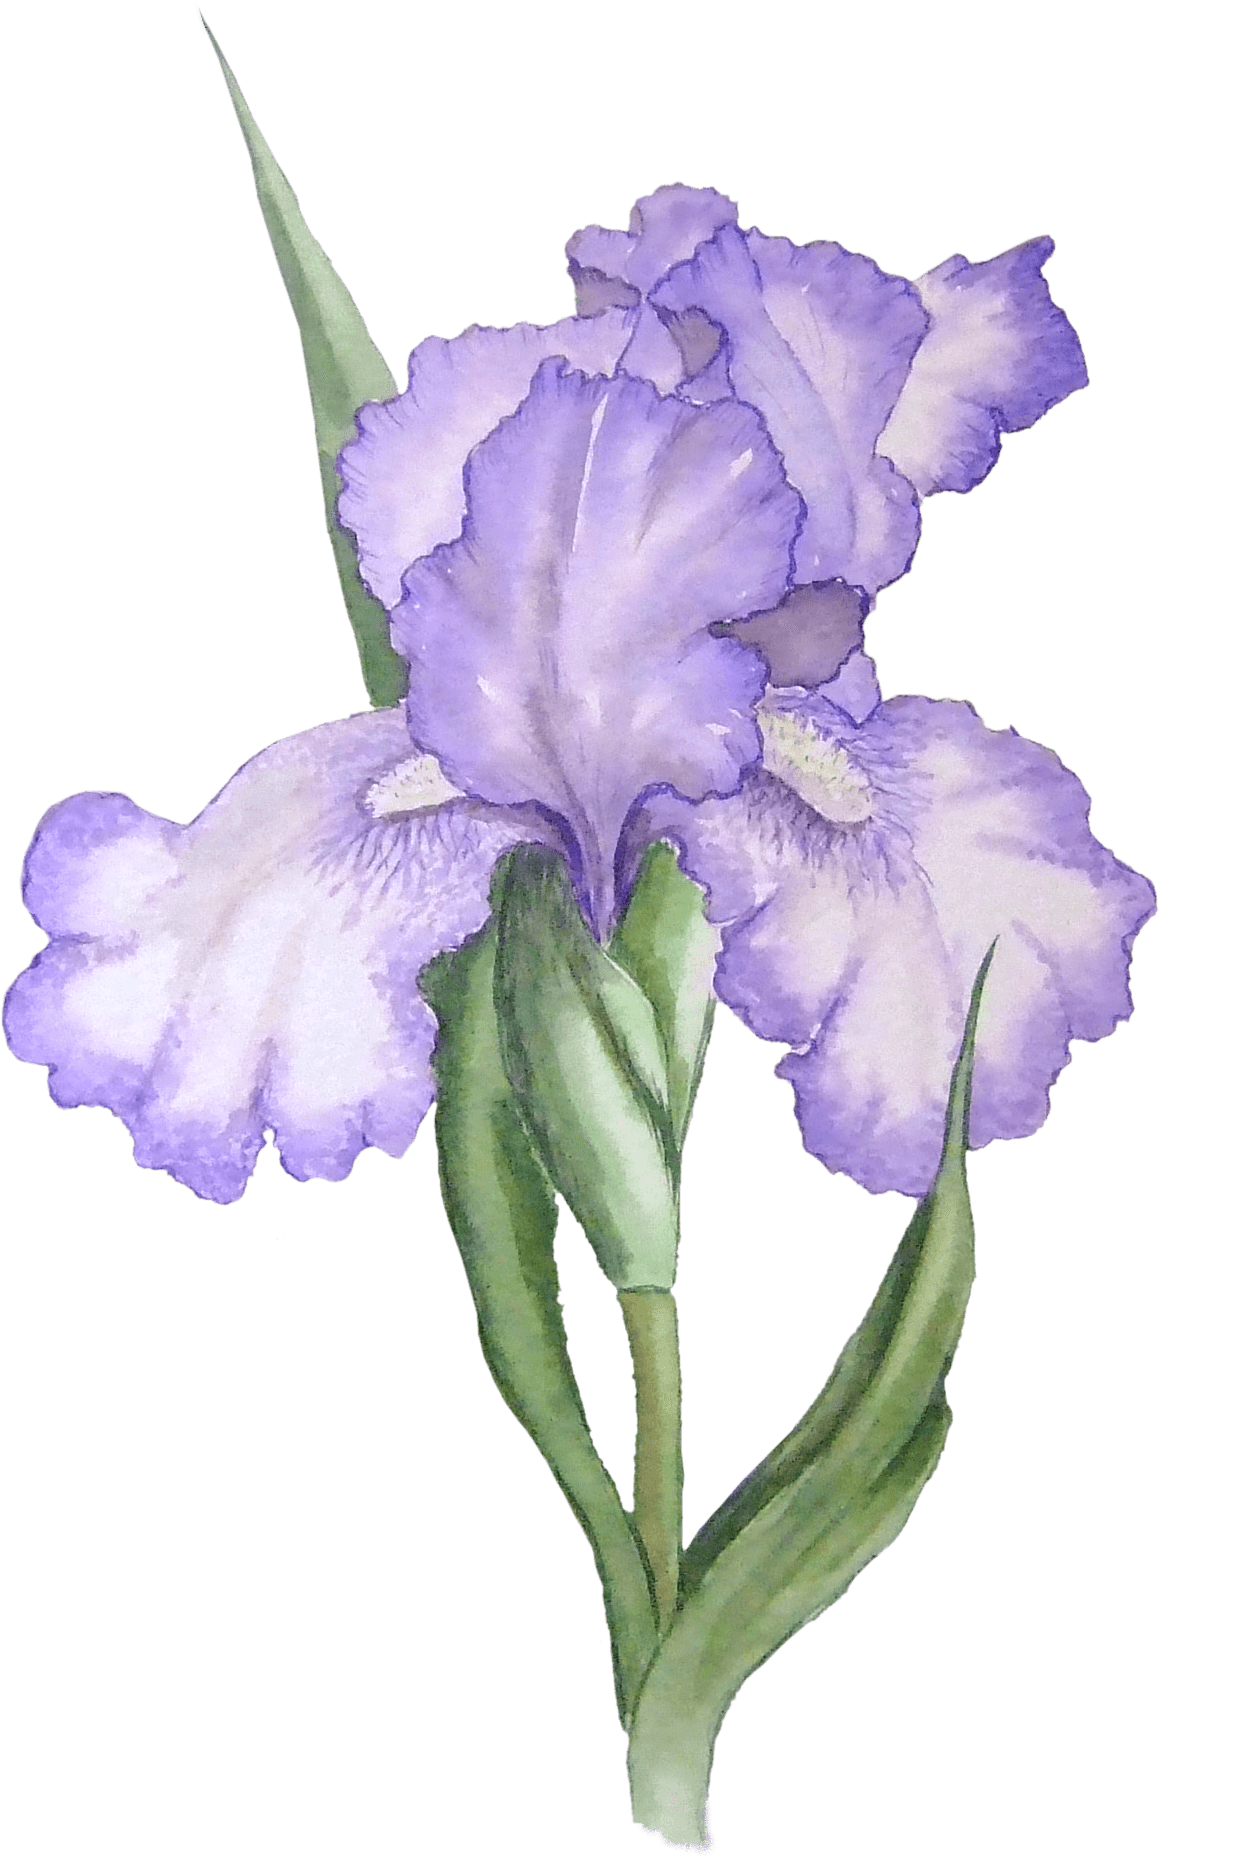 Iris flower png. Illustration transparent stickpng download